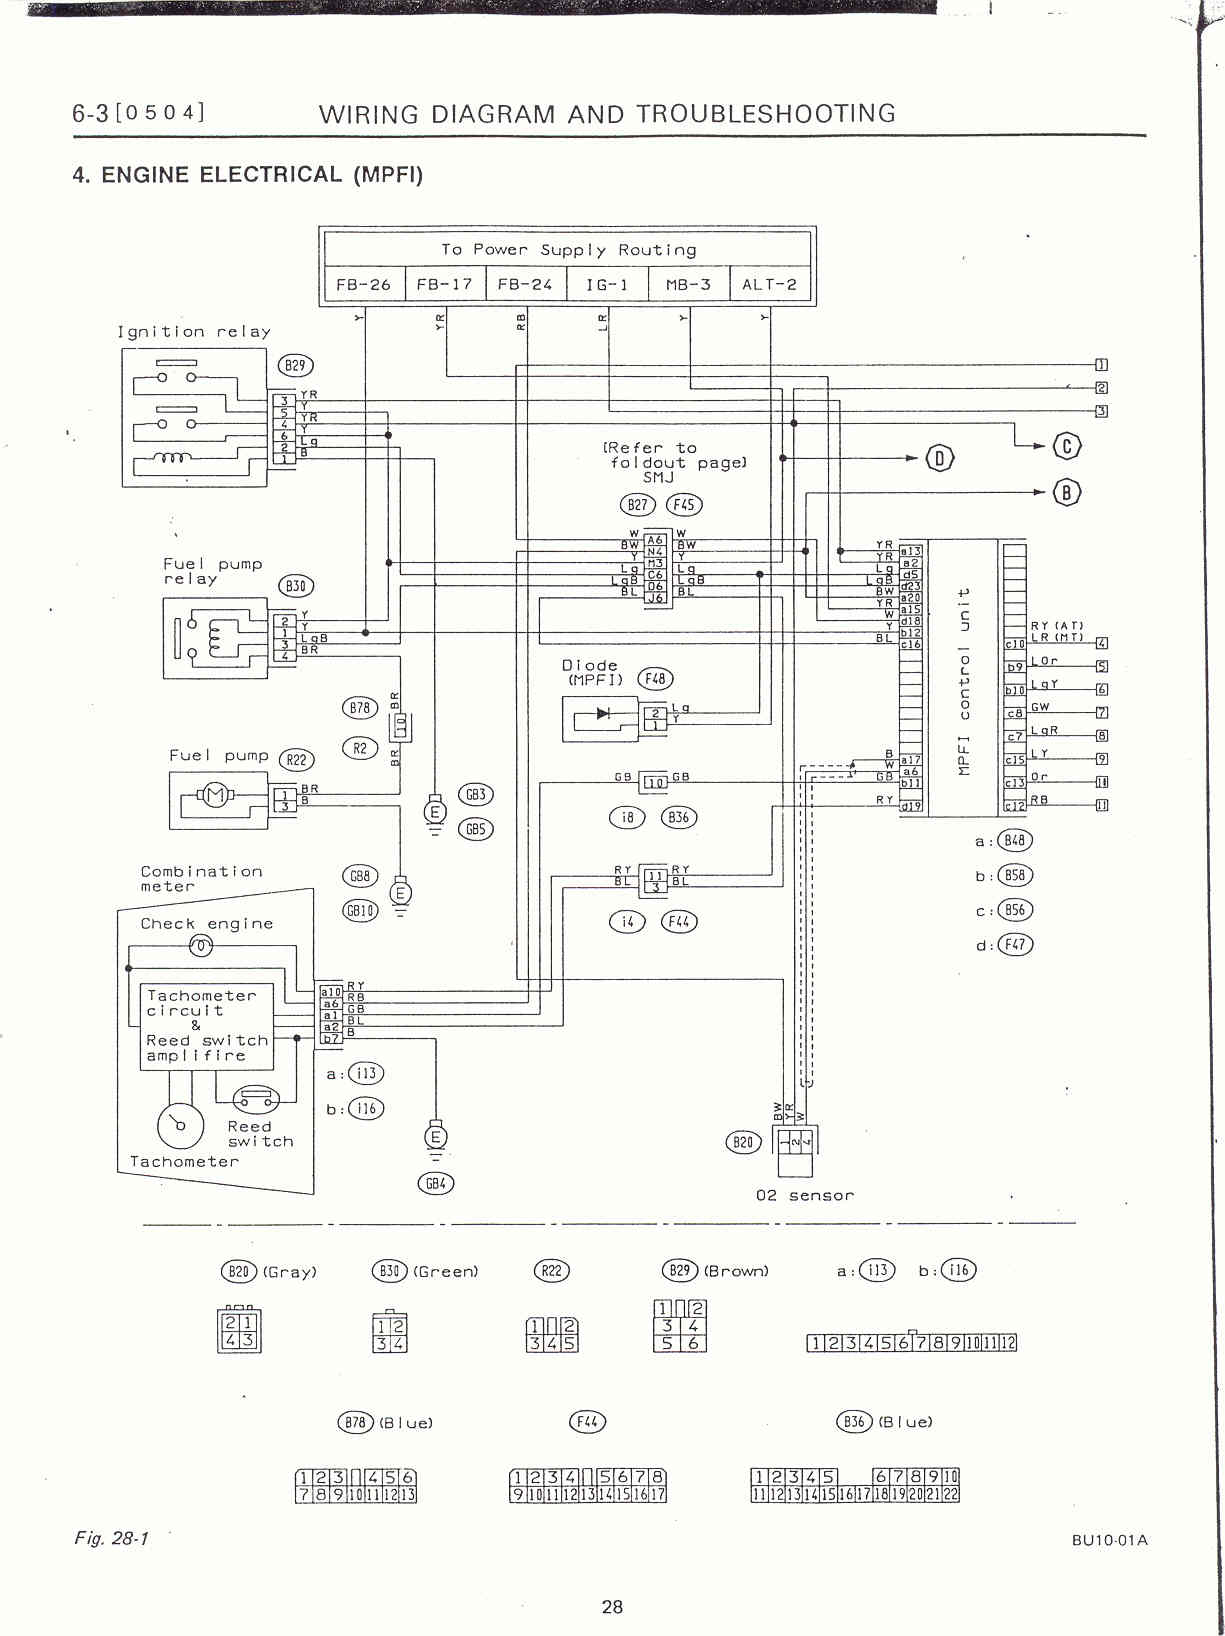 subaru engine harness diagram subaru wiring diagrams